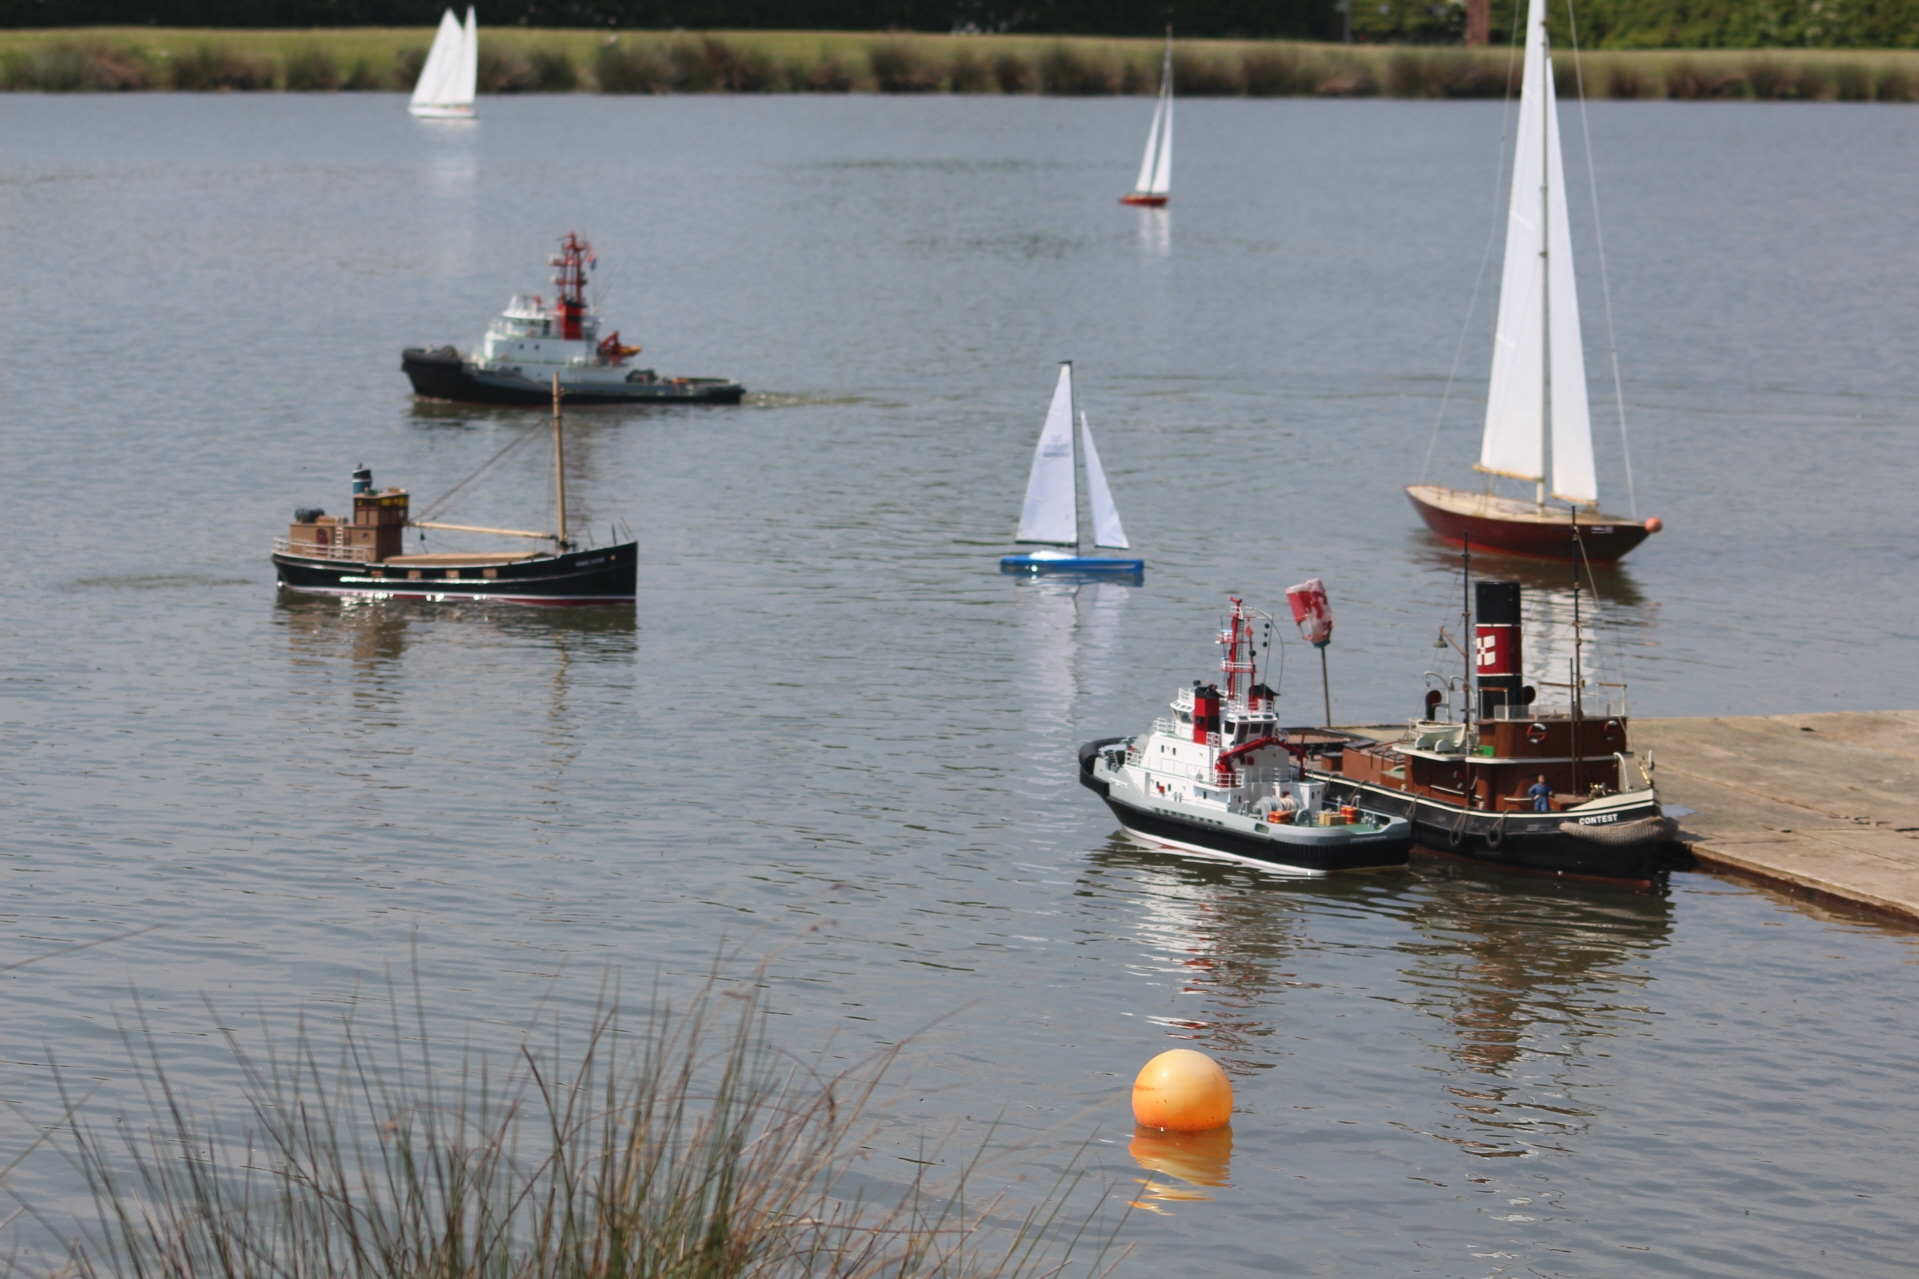 York Model Boat Club Regatta